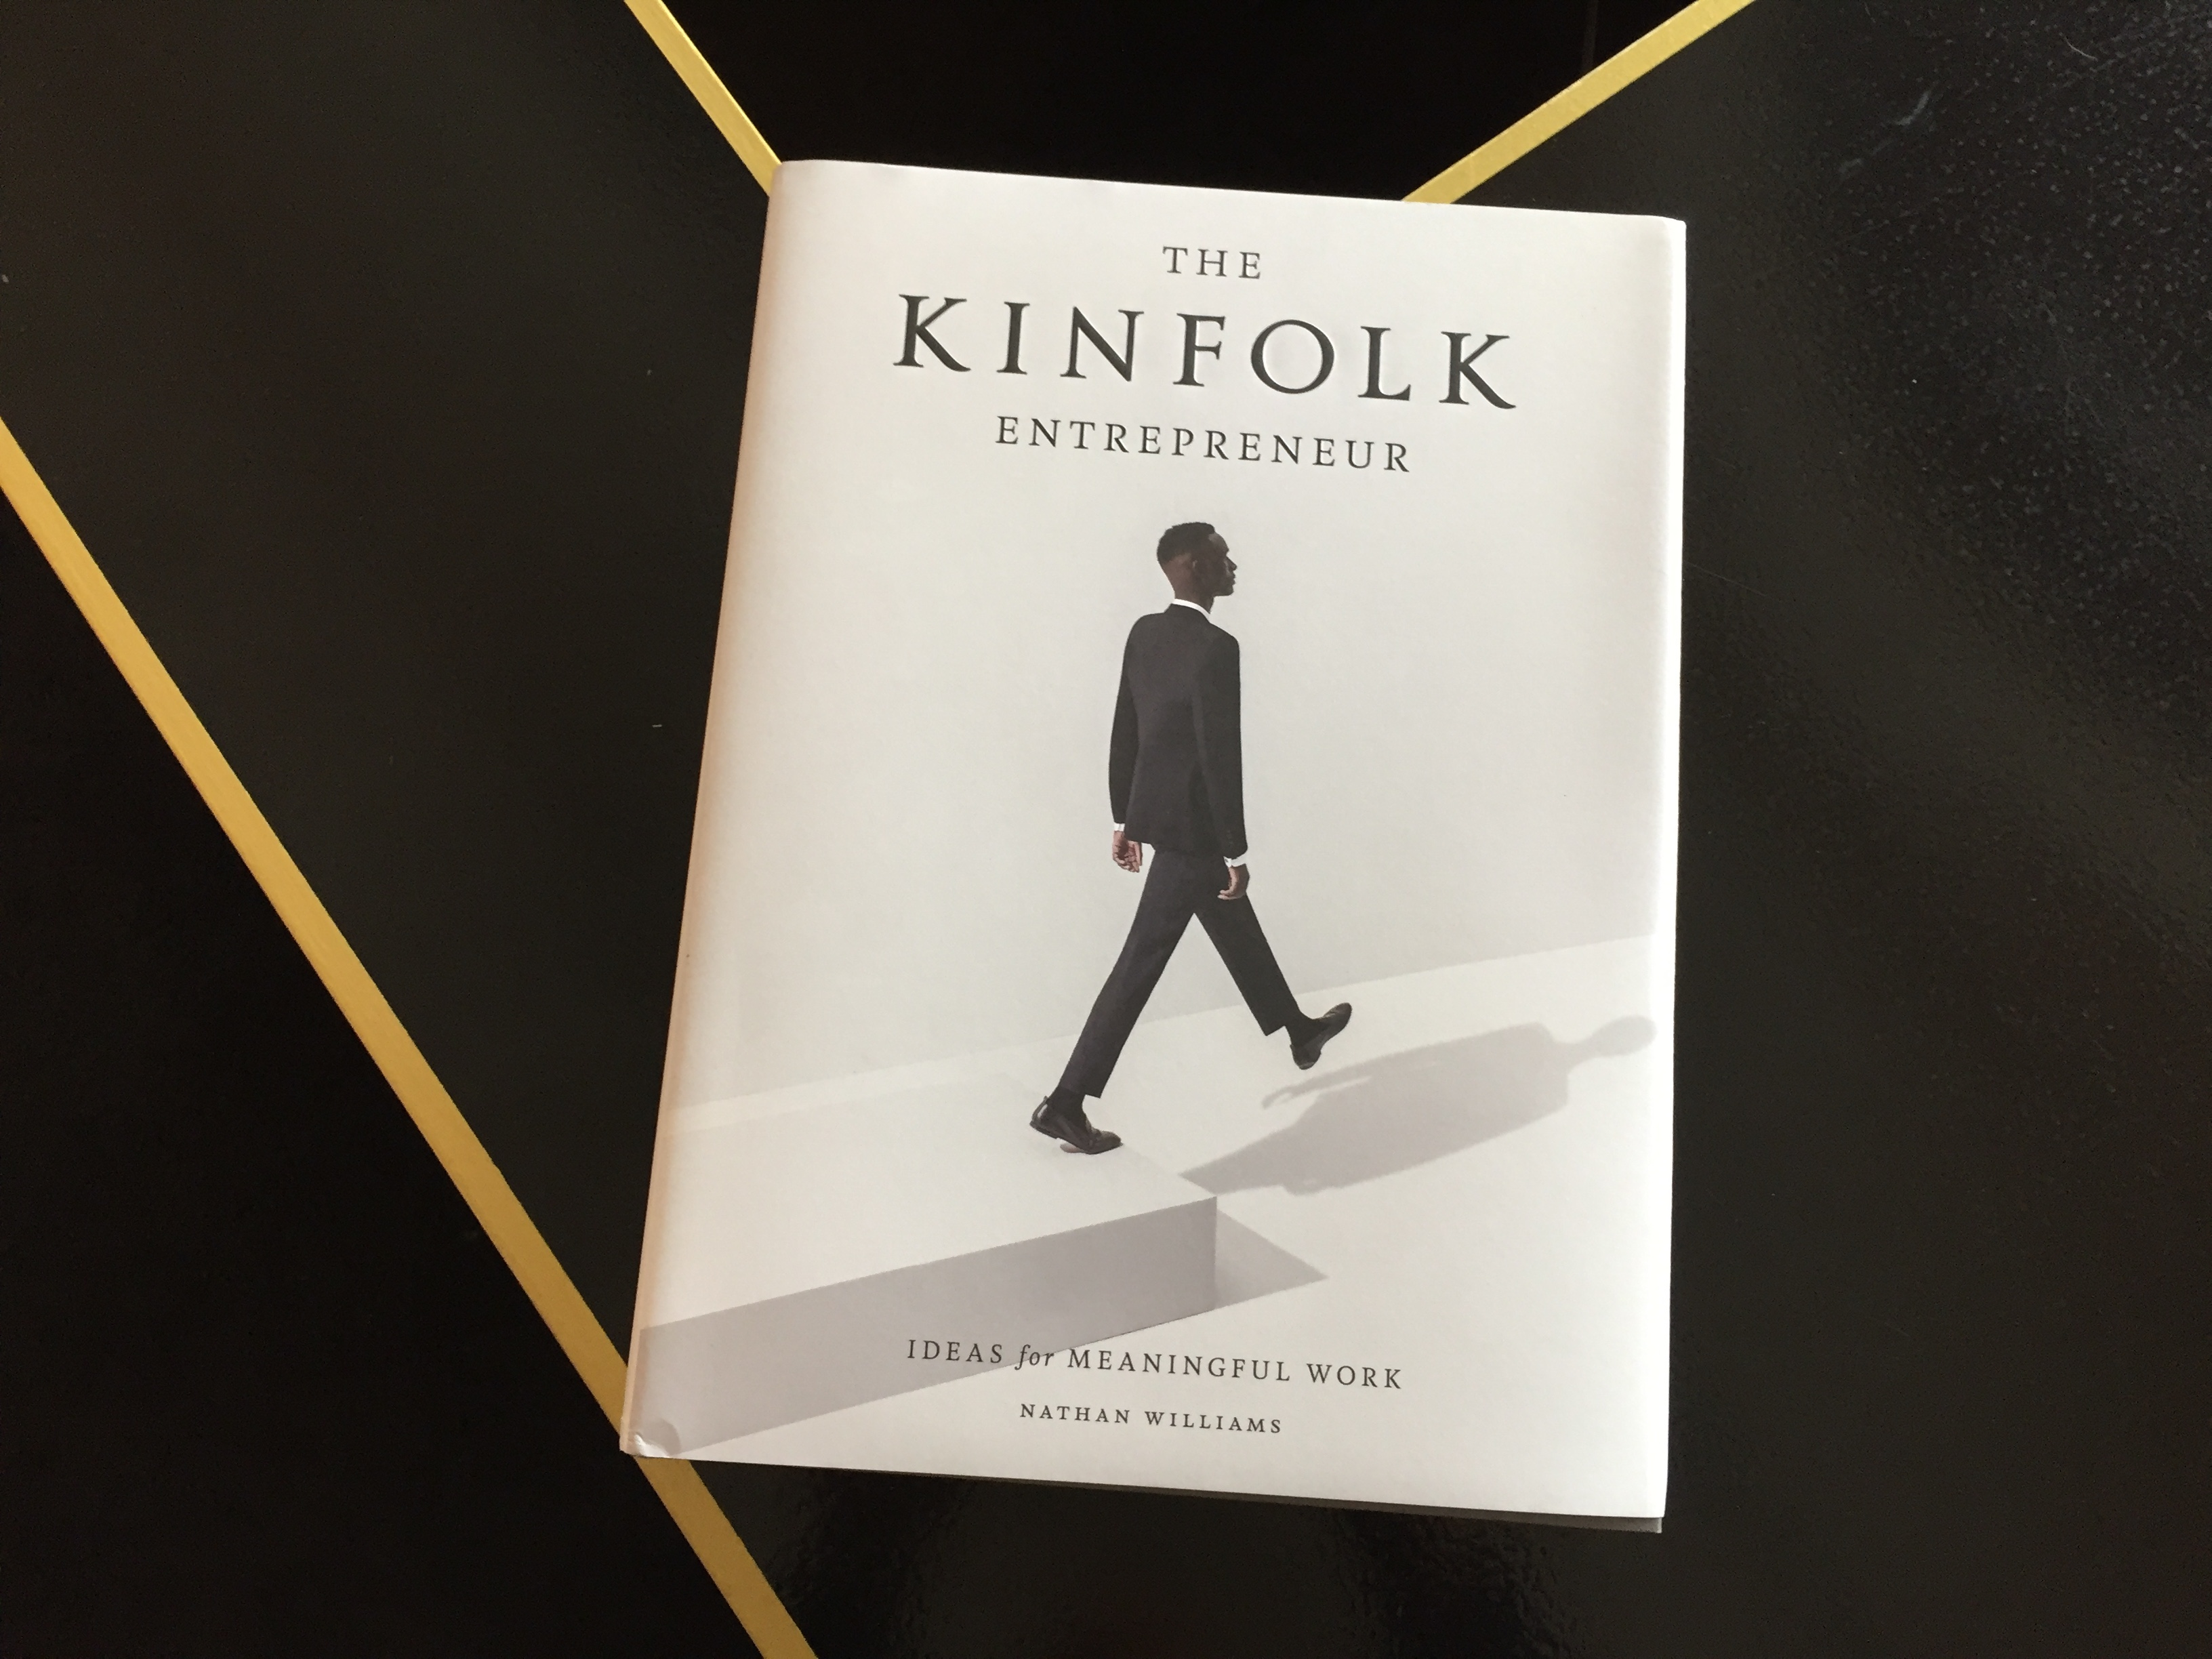 Kinfolk lists Fantastic Frank among 40 entrepreneurs inspiring their industry tomas backman